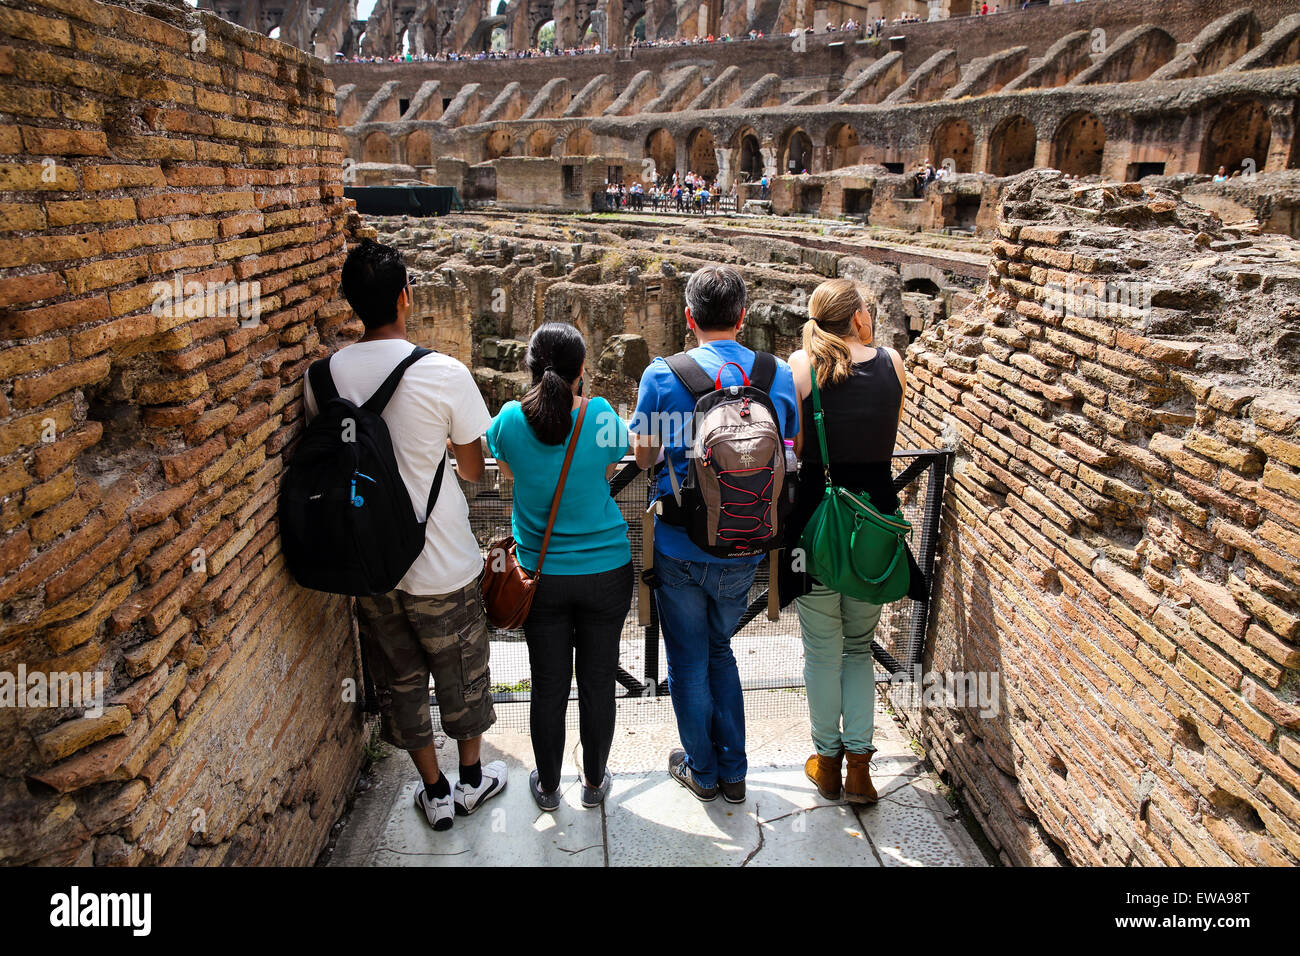 Tourists admiring the Colosseum in Rome - Stock Image